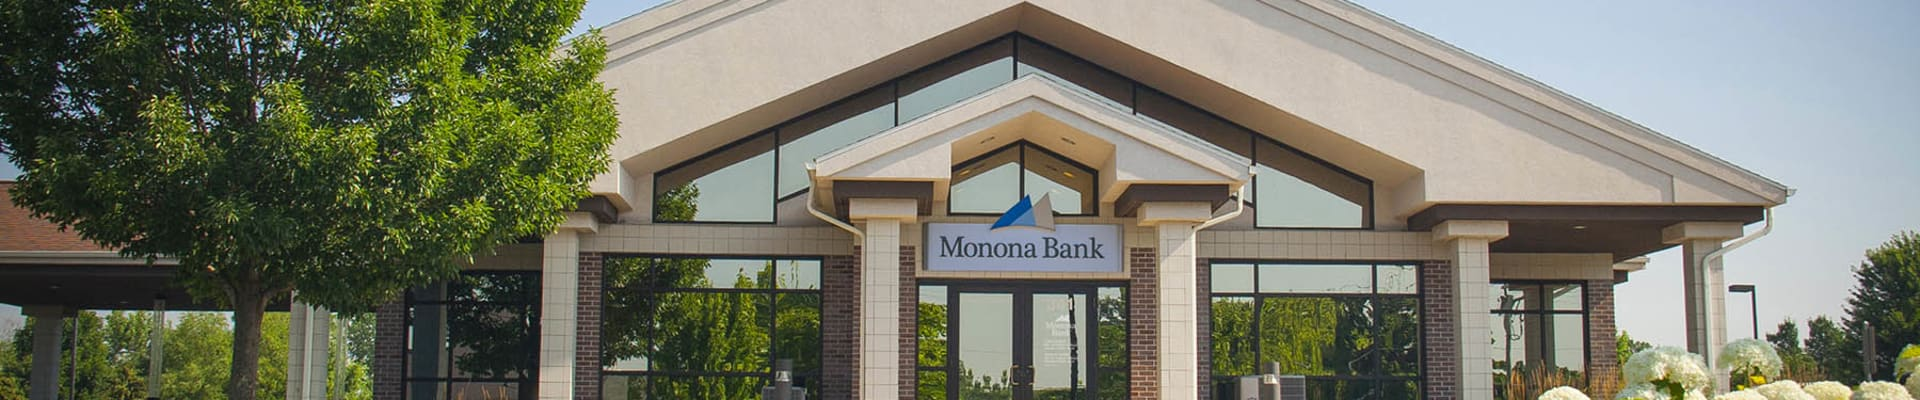 Monona Bank Cottage Grove WI